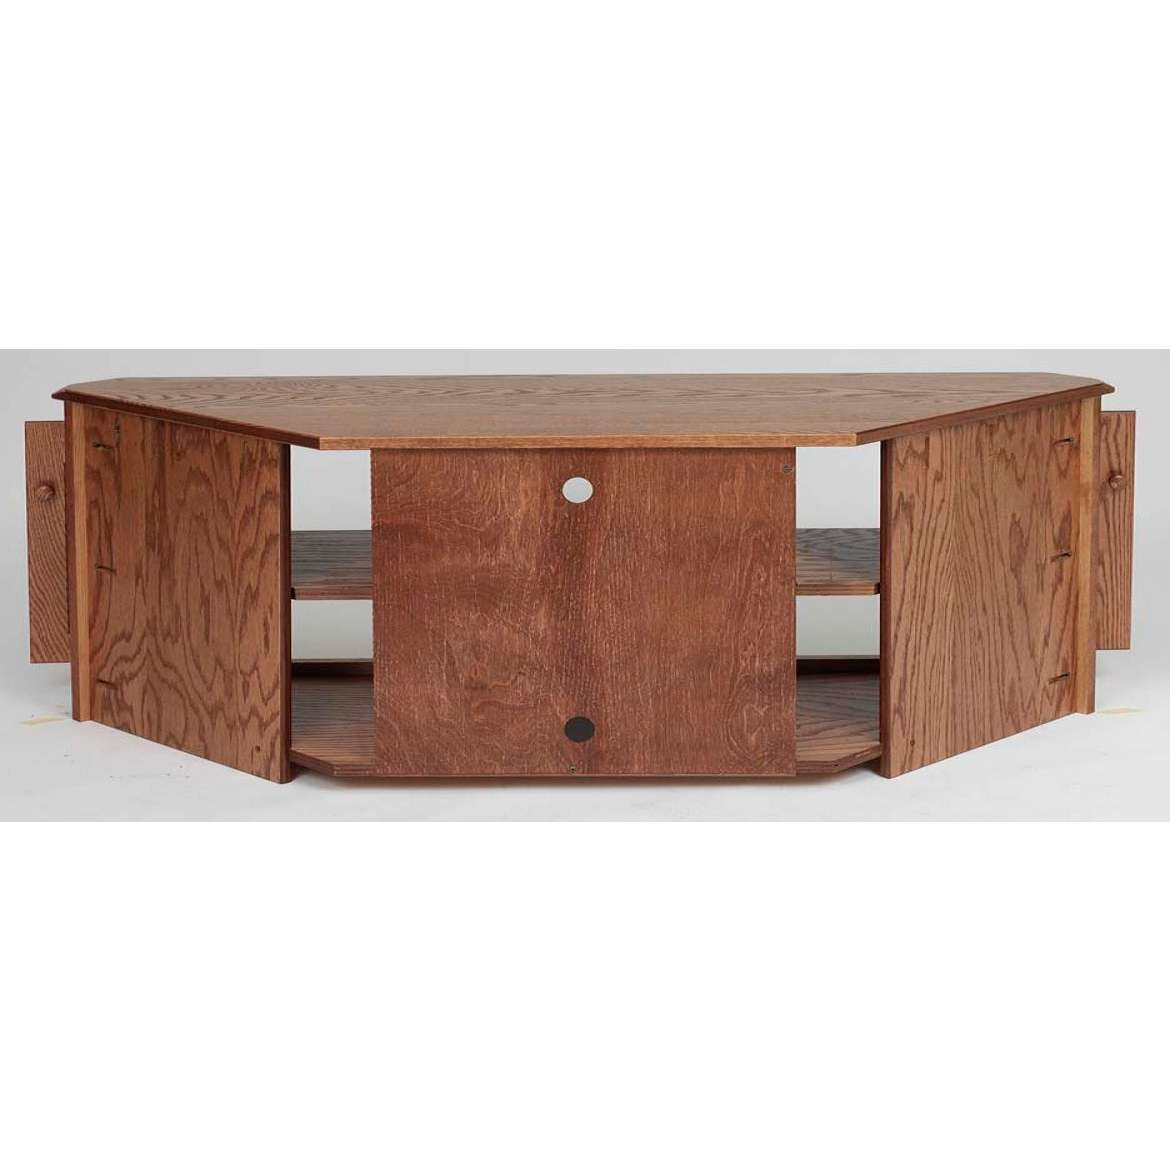 Tv : Solid Oak Country Style Corner Tv Stand Cabinet 64 Amazing Intended For French Country Tv Cabinets (View 19 of 20)